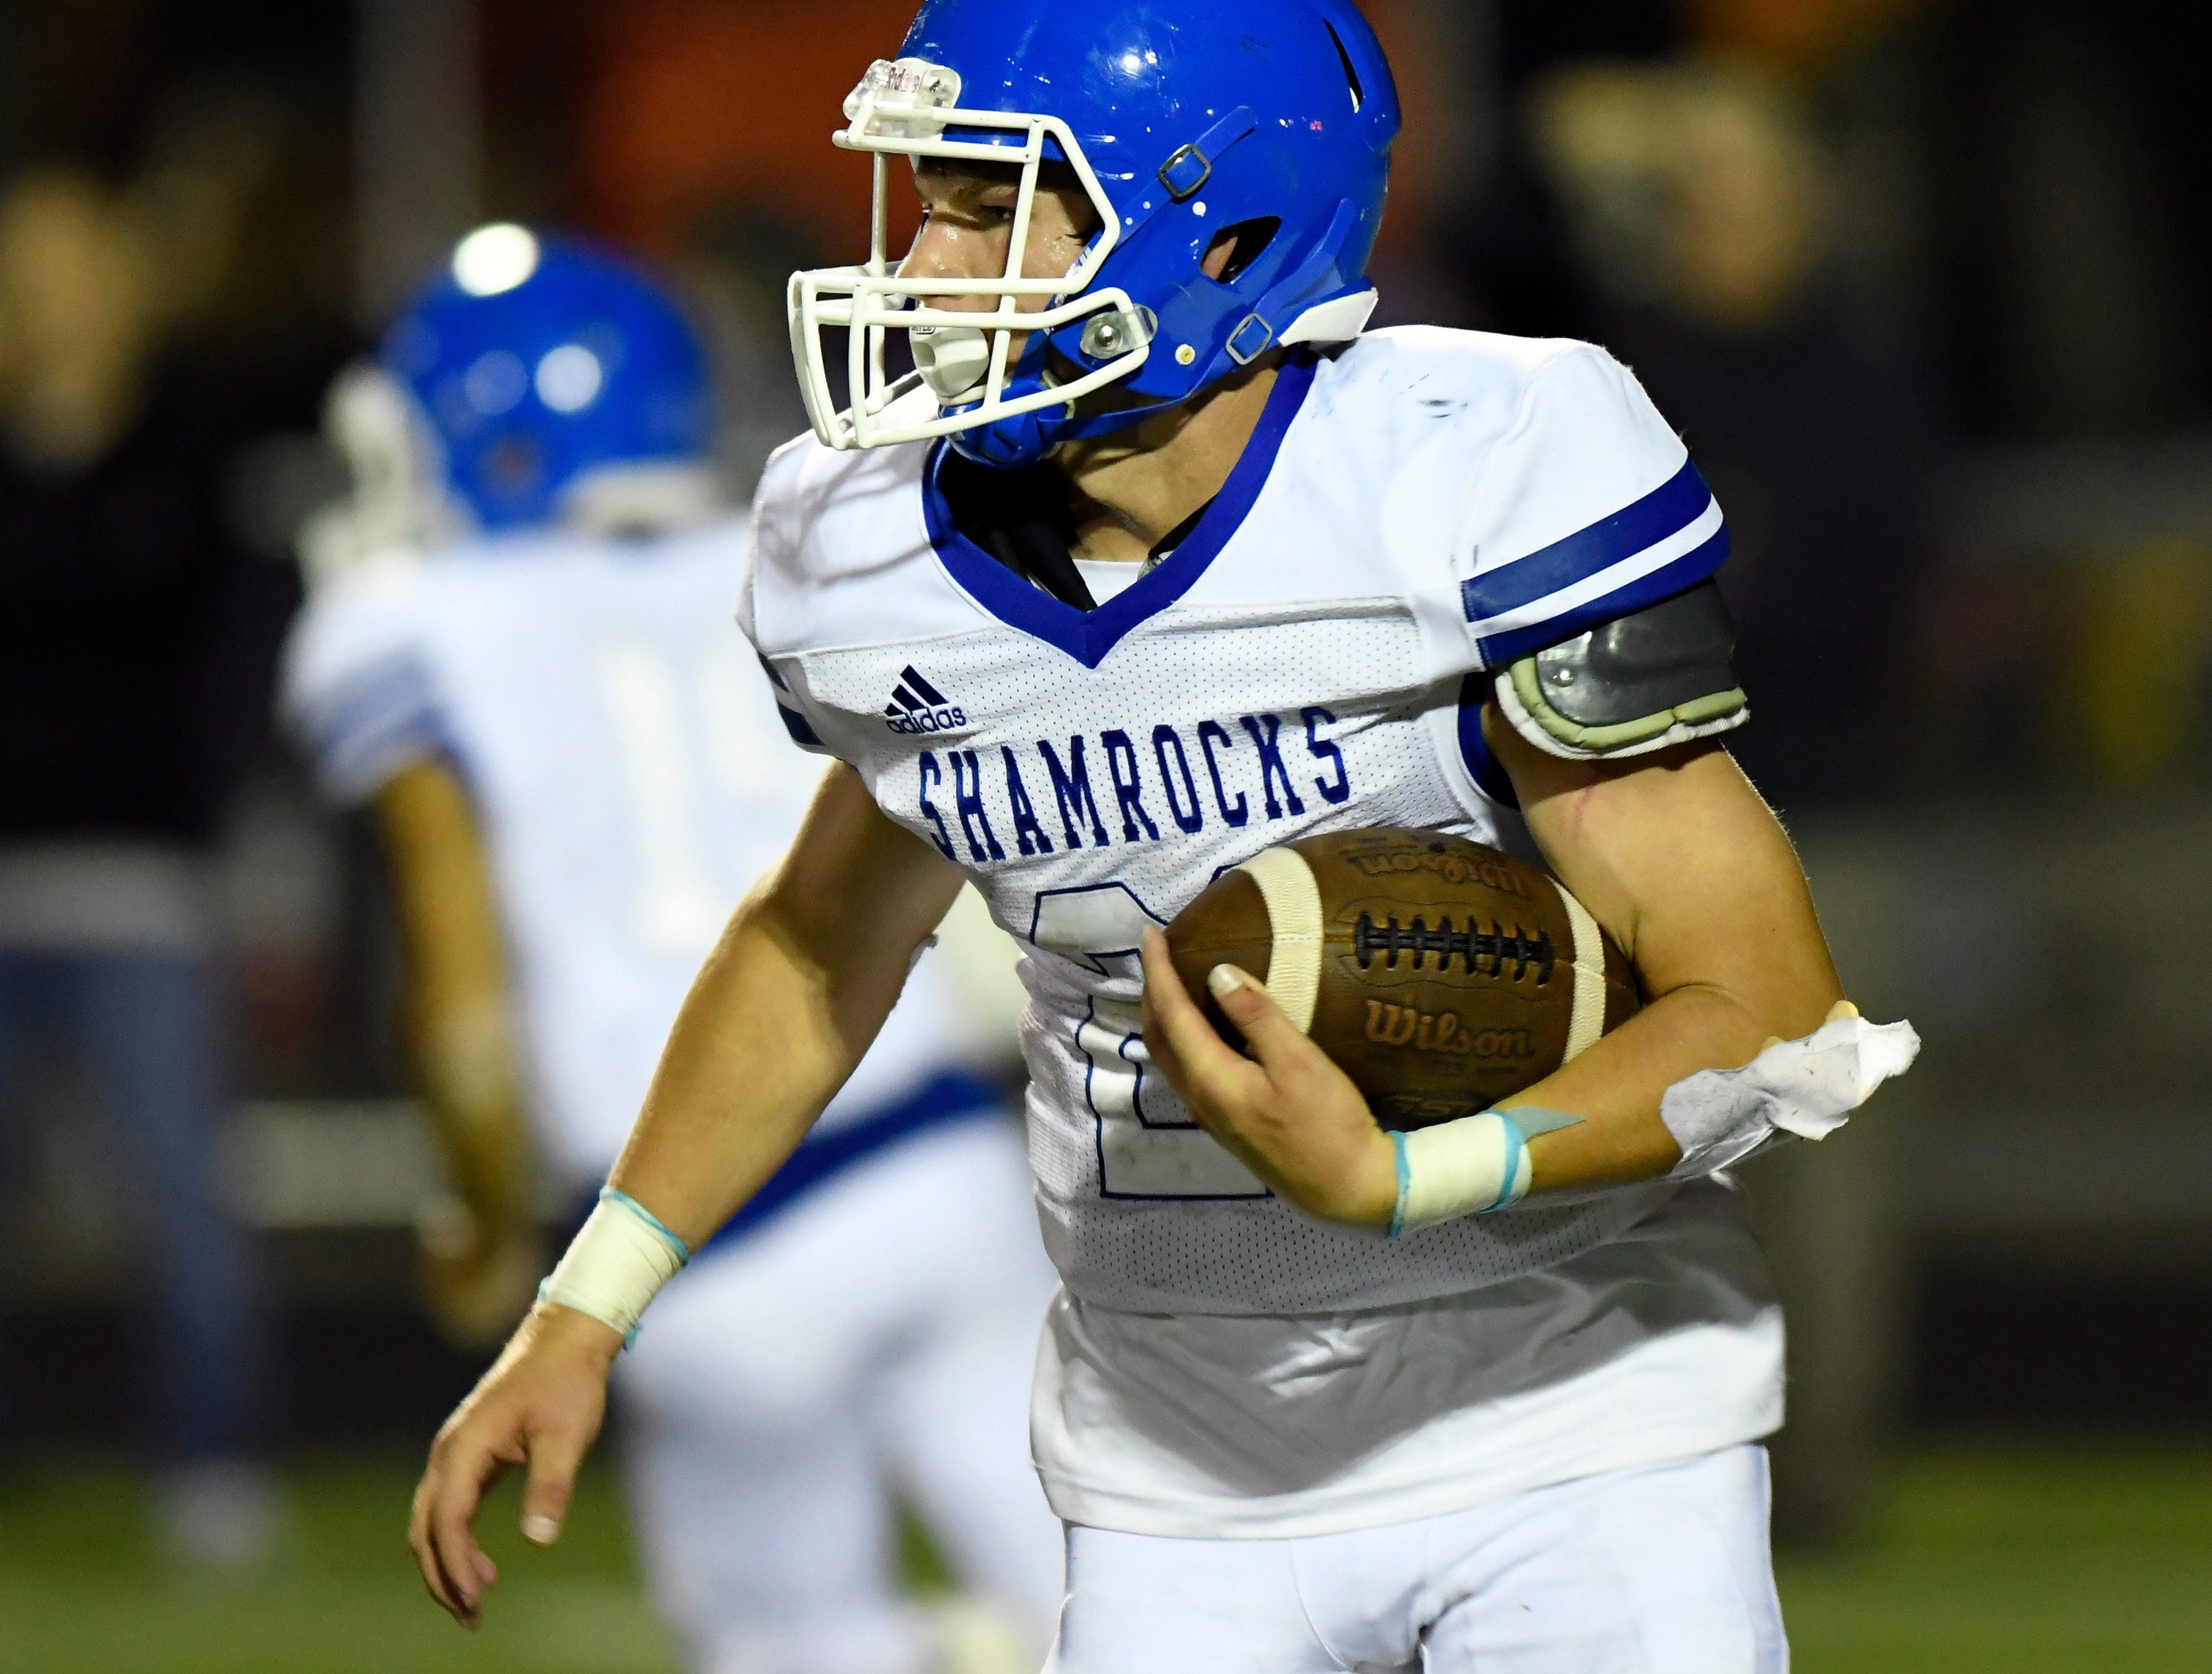 Detroit Catholic Central running back Keegan Koehler (21) runs for yardage against Birmingham Brother Rice in the third quarter, Saturday, Sept. 22, 2018 at Hurley Field in Berkley, Mich.  Catholic Central defeated Brother Rice, 21-0.